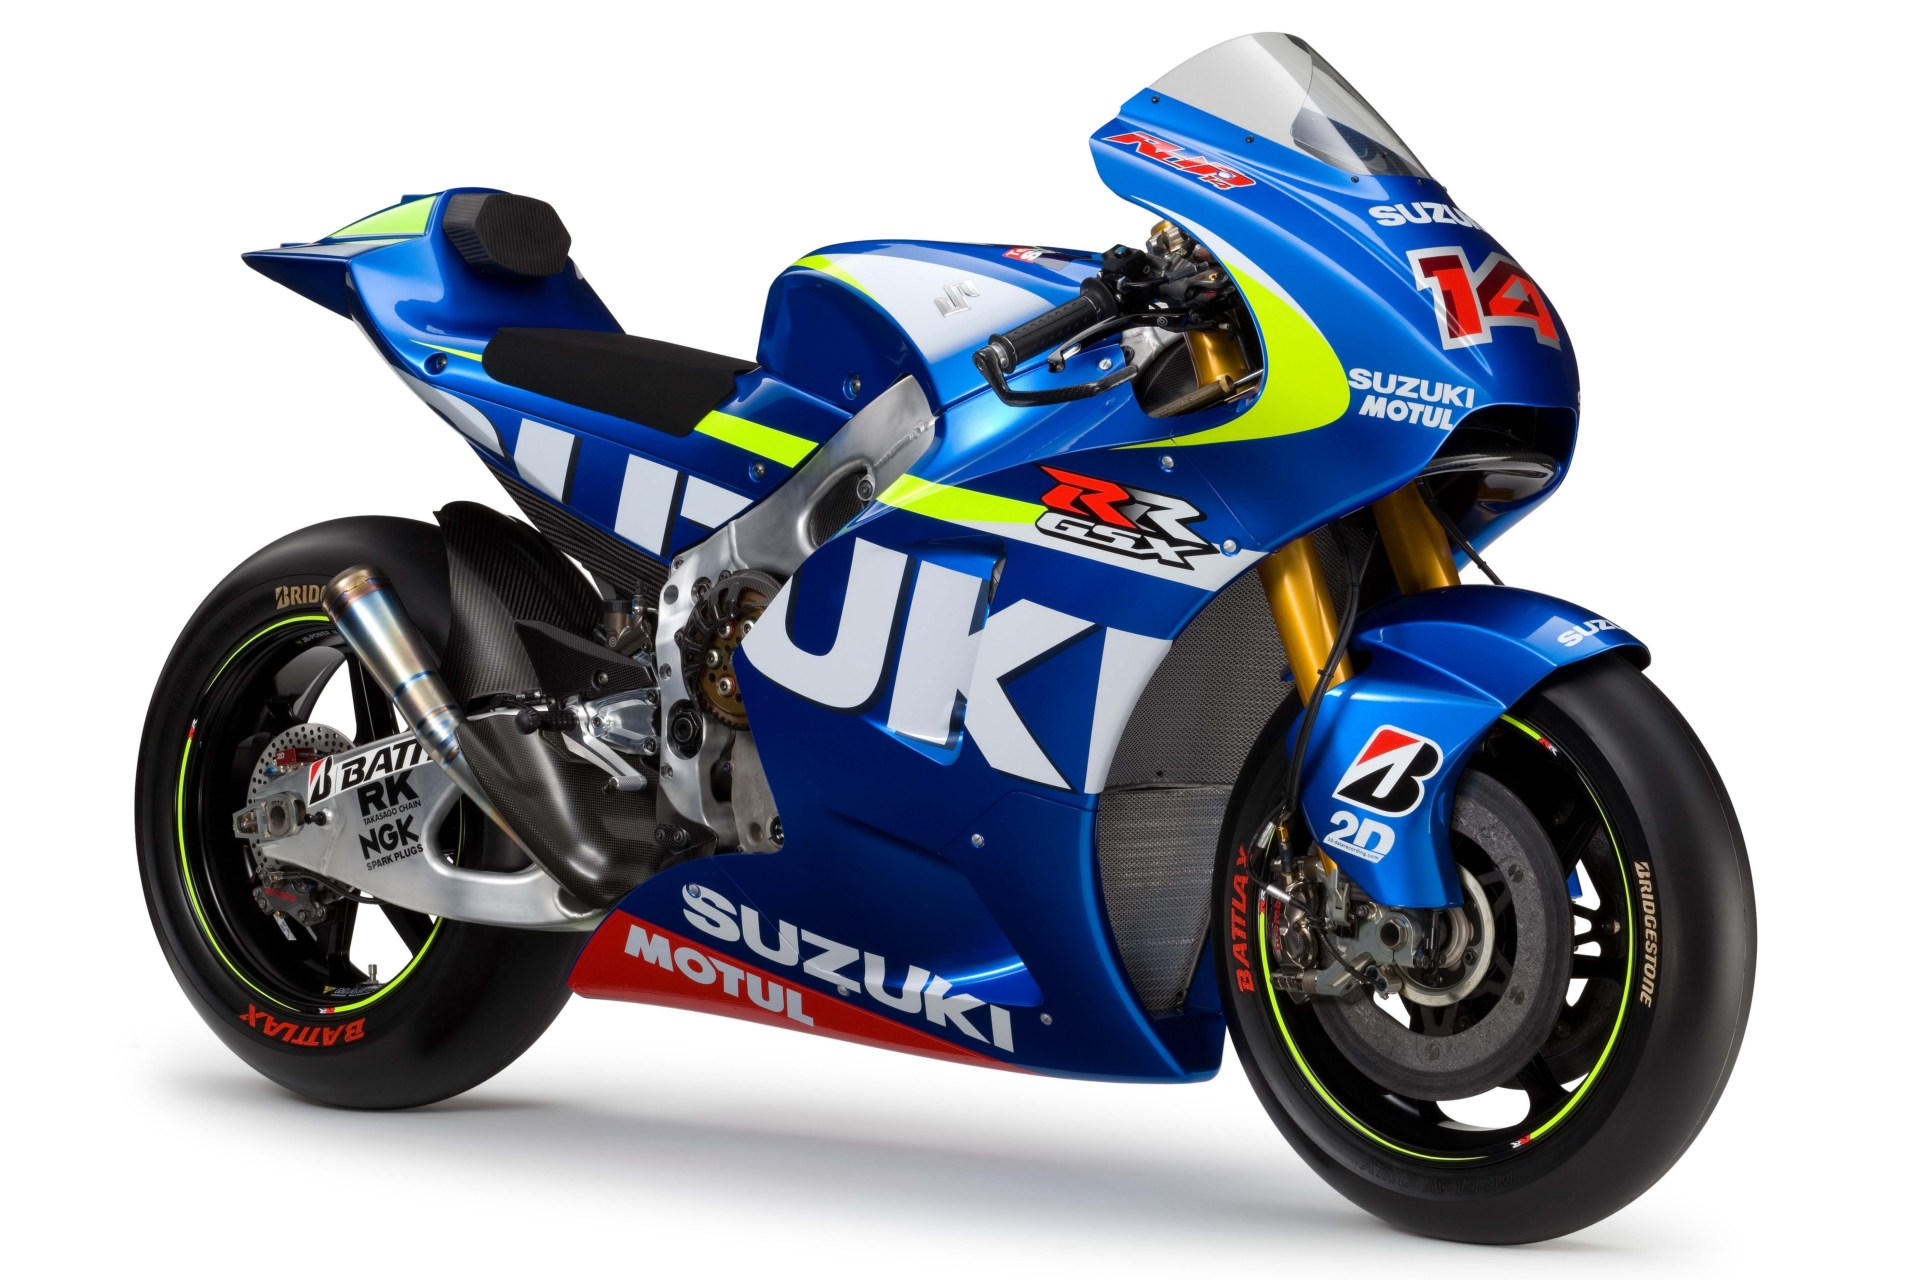 all-new suzuki gsx-r1000 rumored to surface as 2016 model